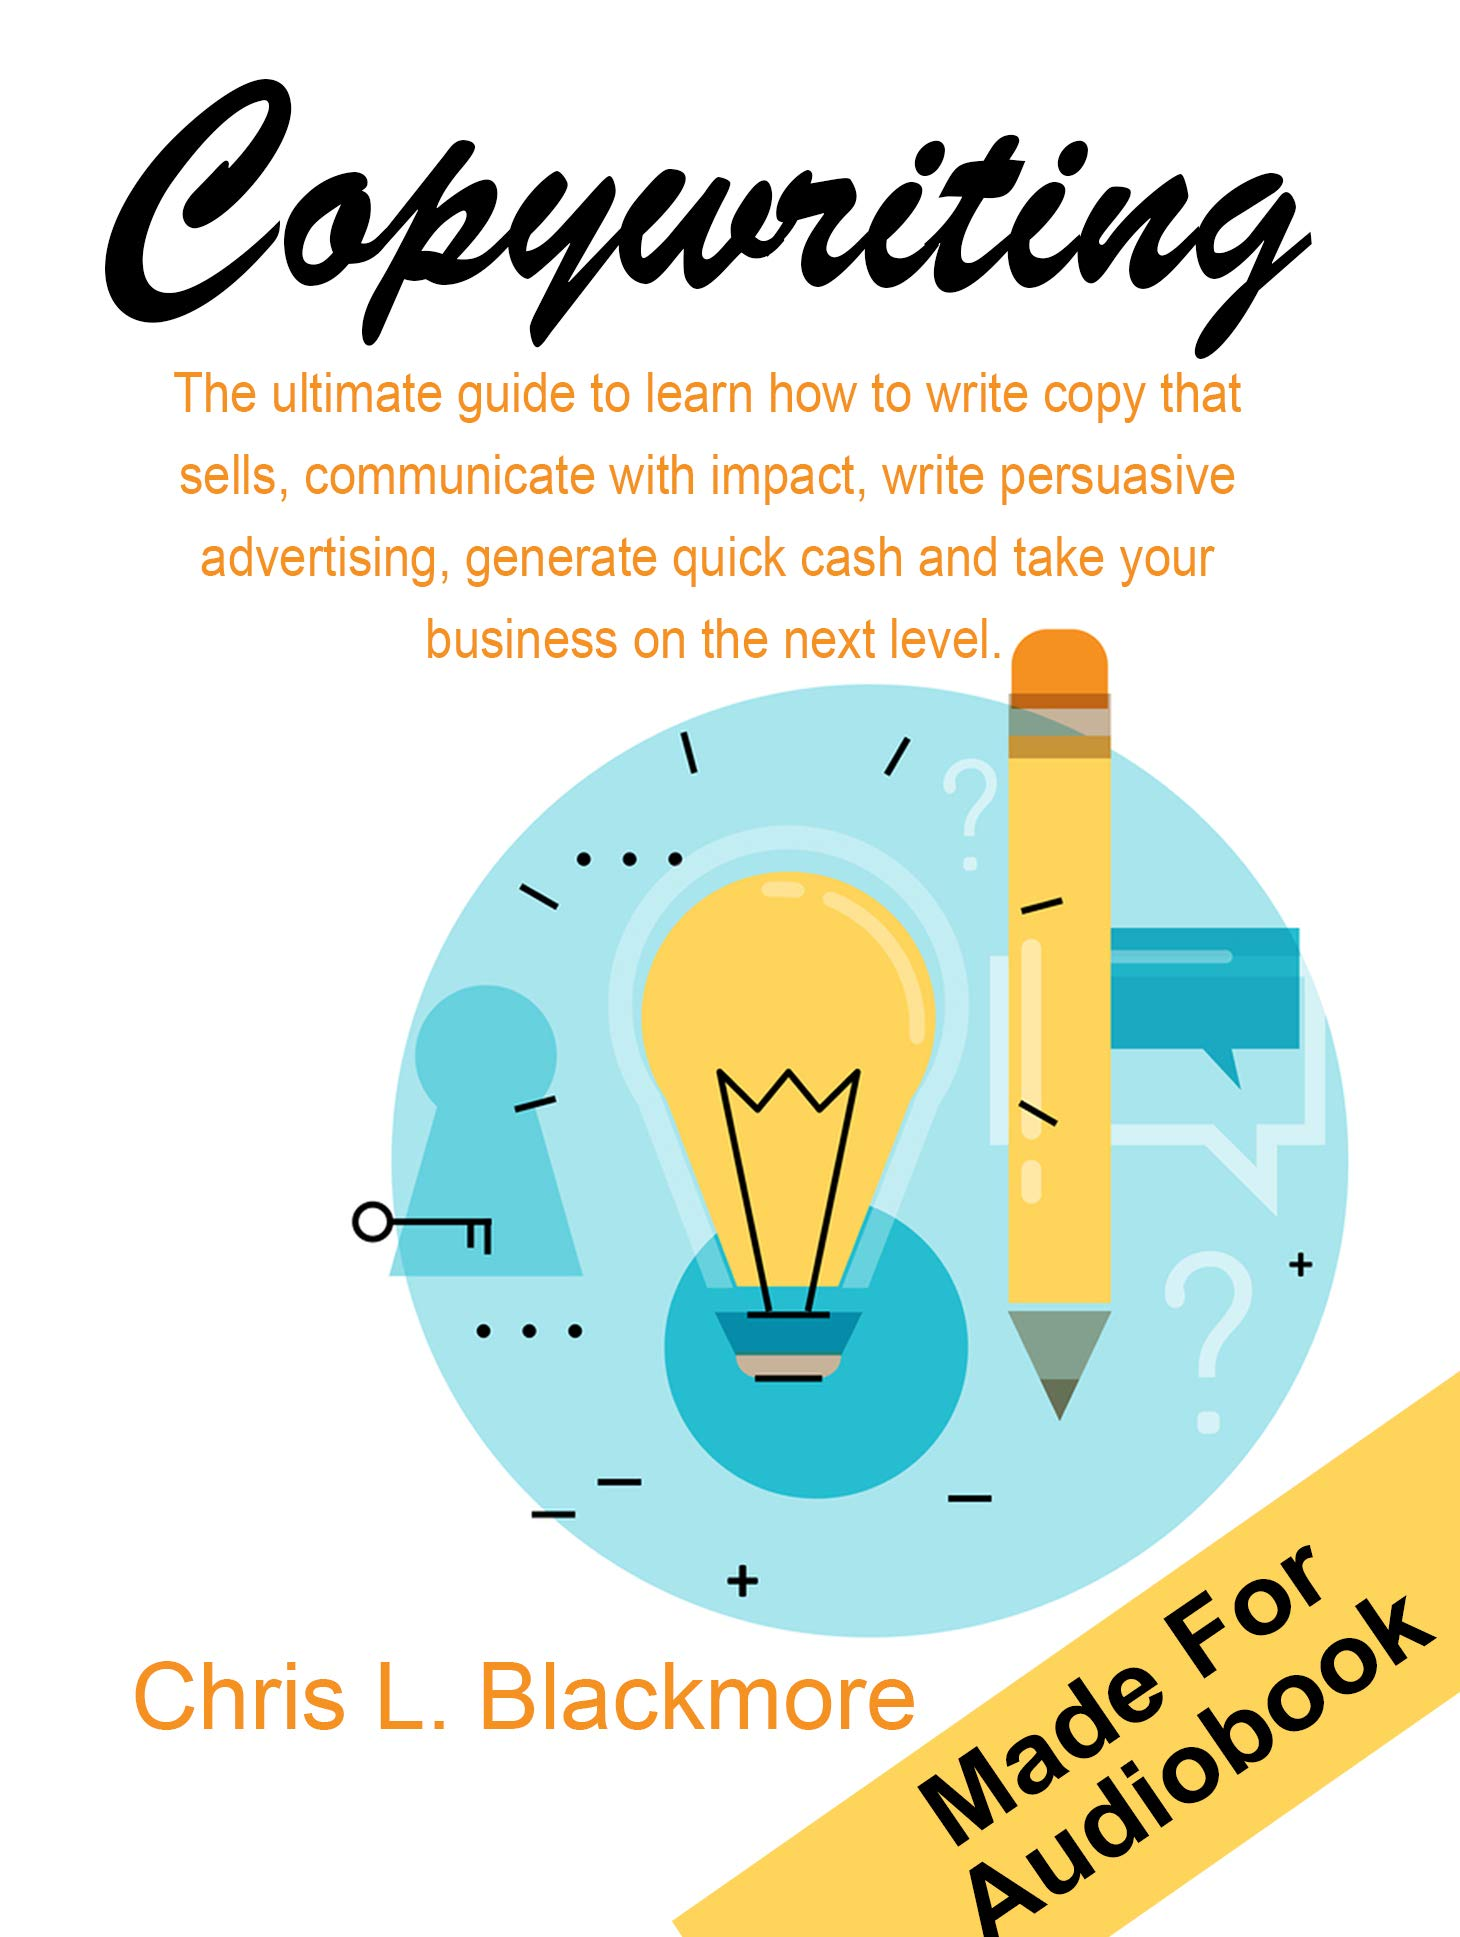 Copywriting: the ultimate guide to learn how to write copy that sells, communicate with impact, write persuasive advertising, generate quick cash and take your business on the next level